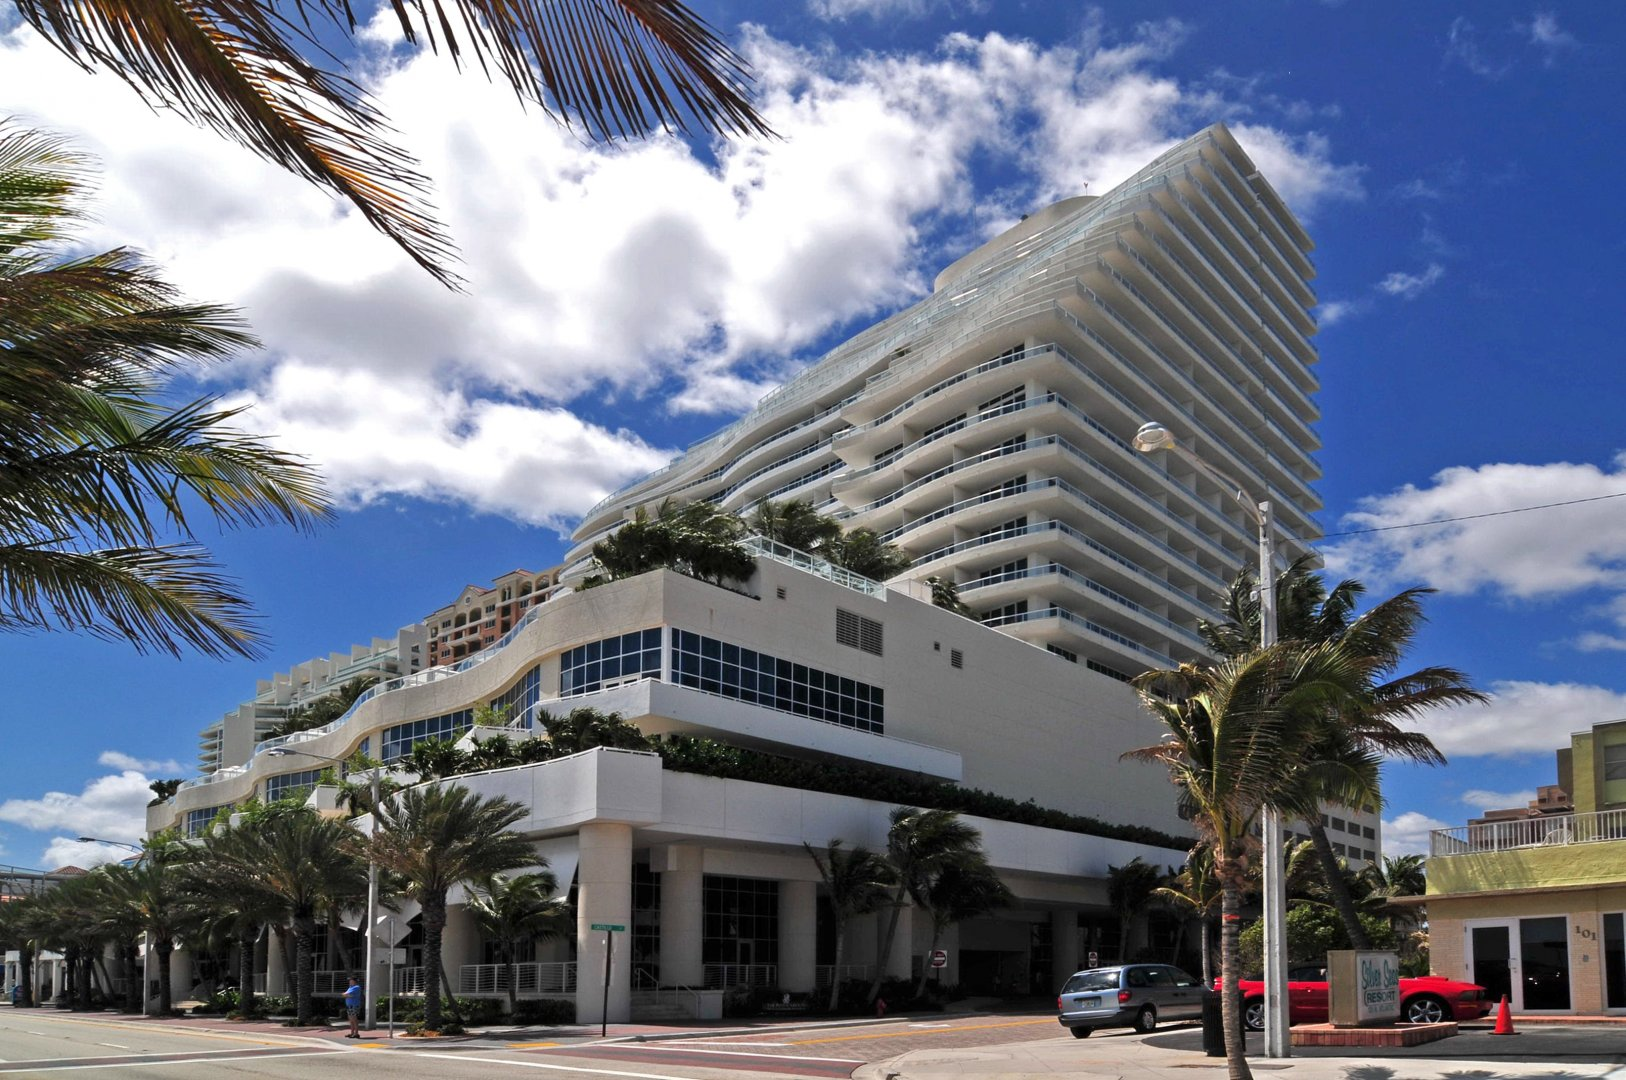 1 N Ft Laud Bch Blvd #1906, Unit #1906 Luxury Real Estate